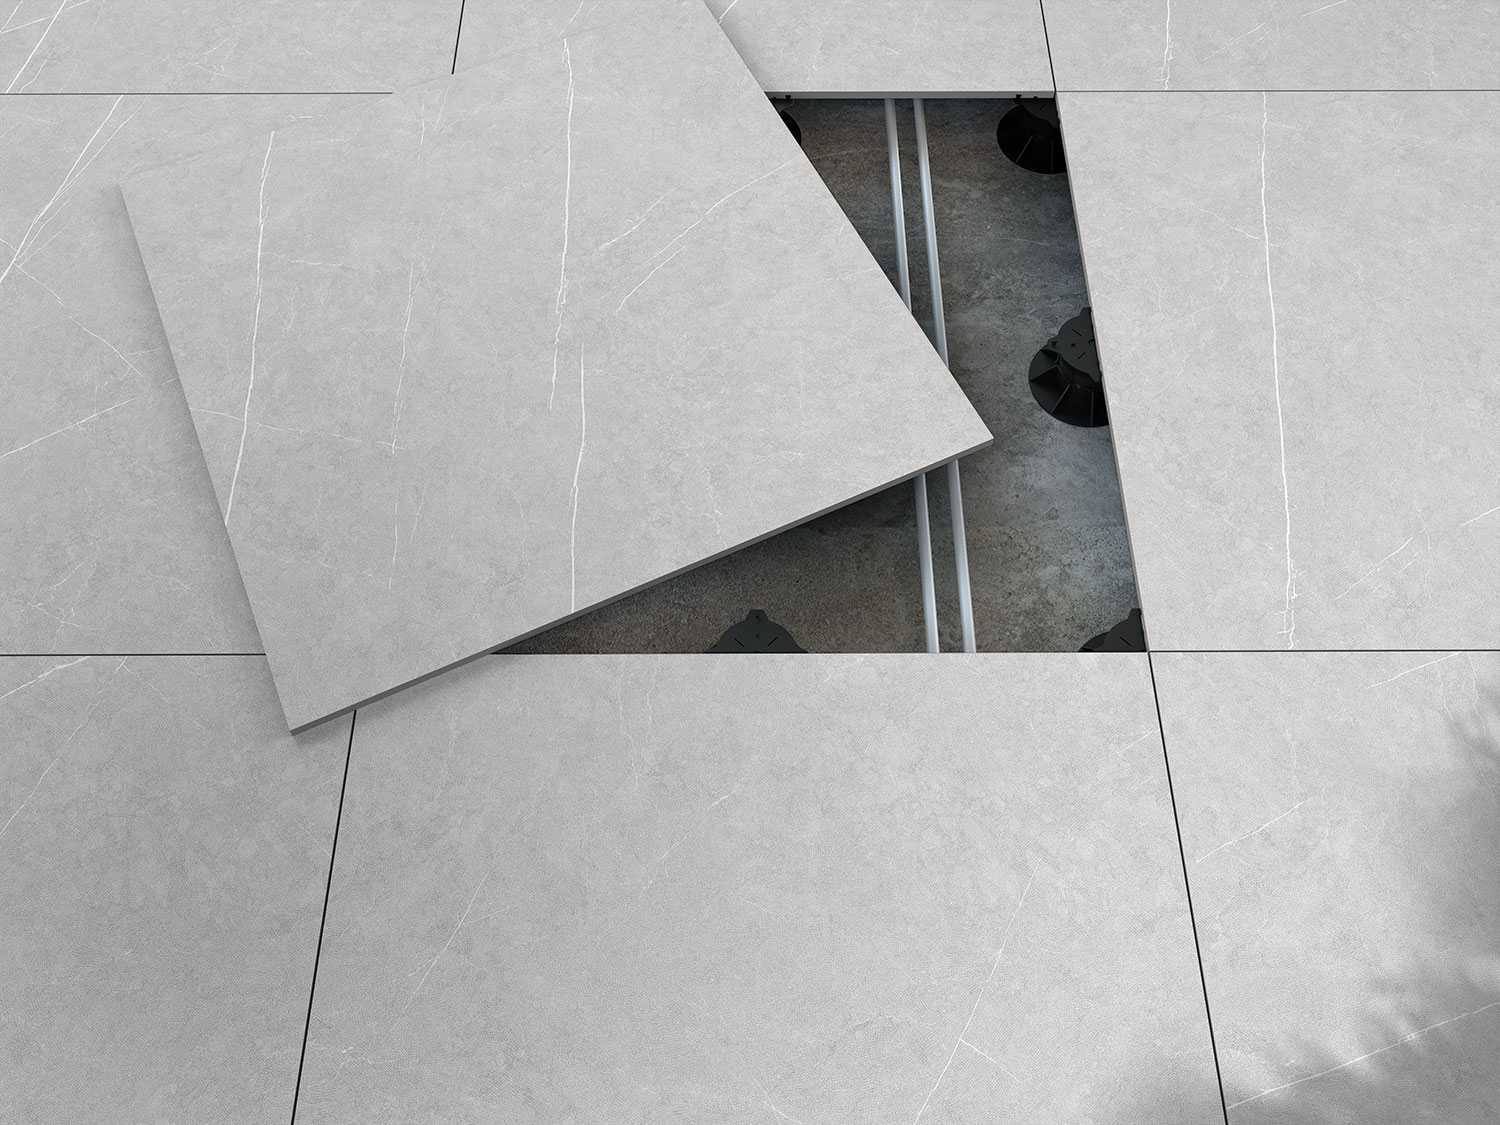 20mm, the porcelain stoneware from Livingceramics perfect for outdoor pavings